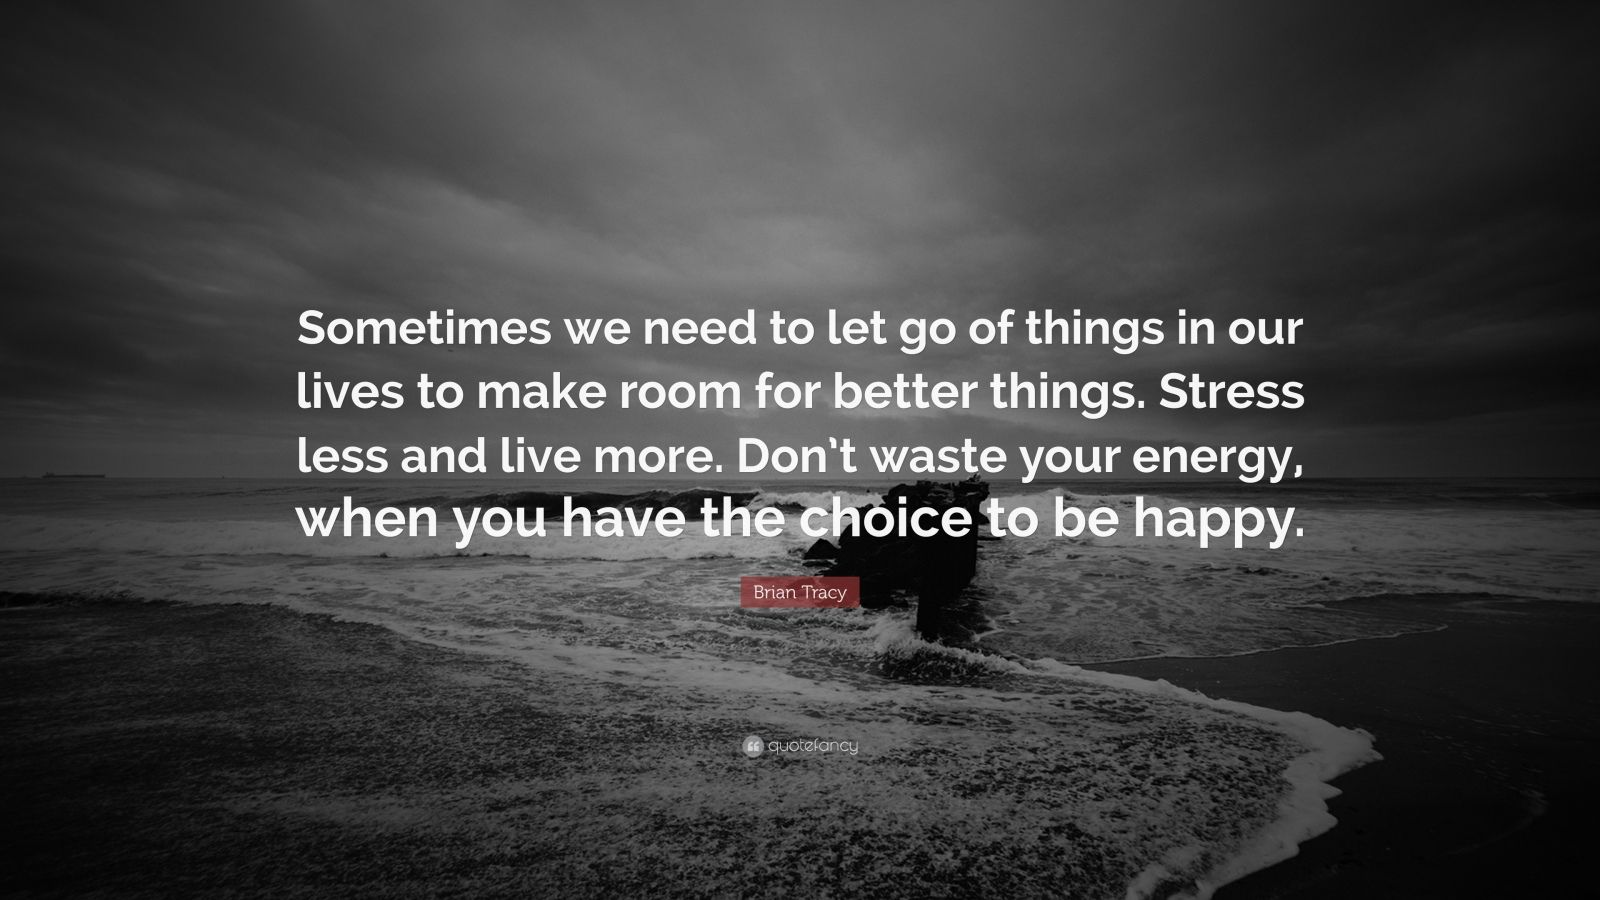 "Brian Tracy Quote: ""Sometimes we need to let go of things in our lives to make room for better things. Stress less and live more. Don't waste your energy, when you have the choice to be happy."""